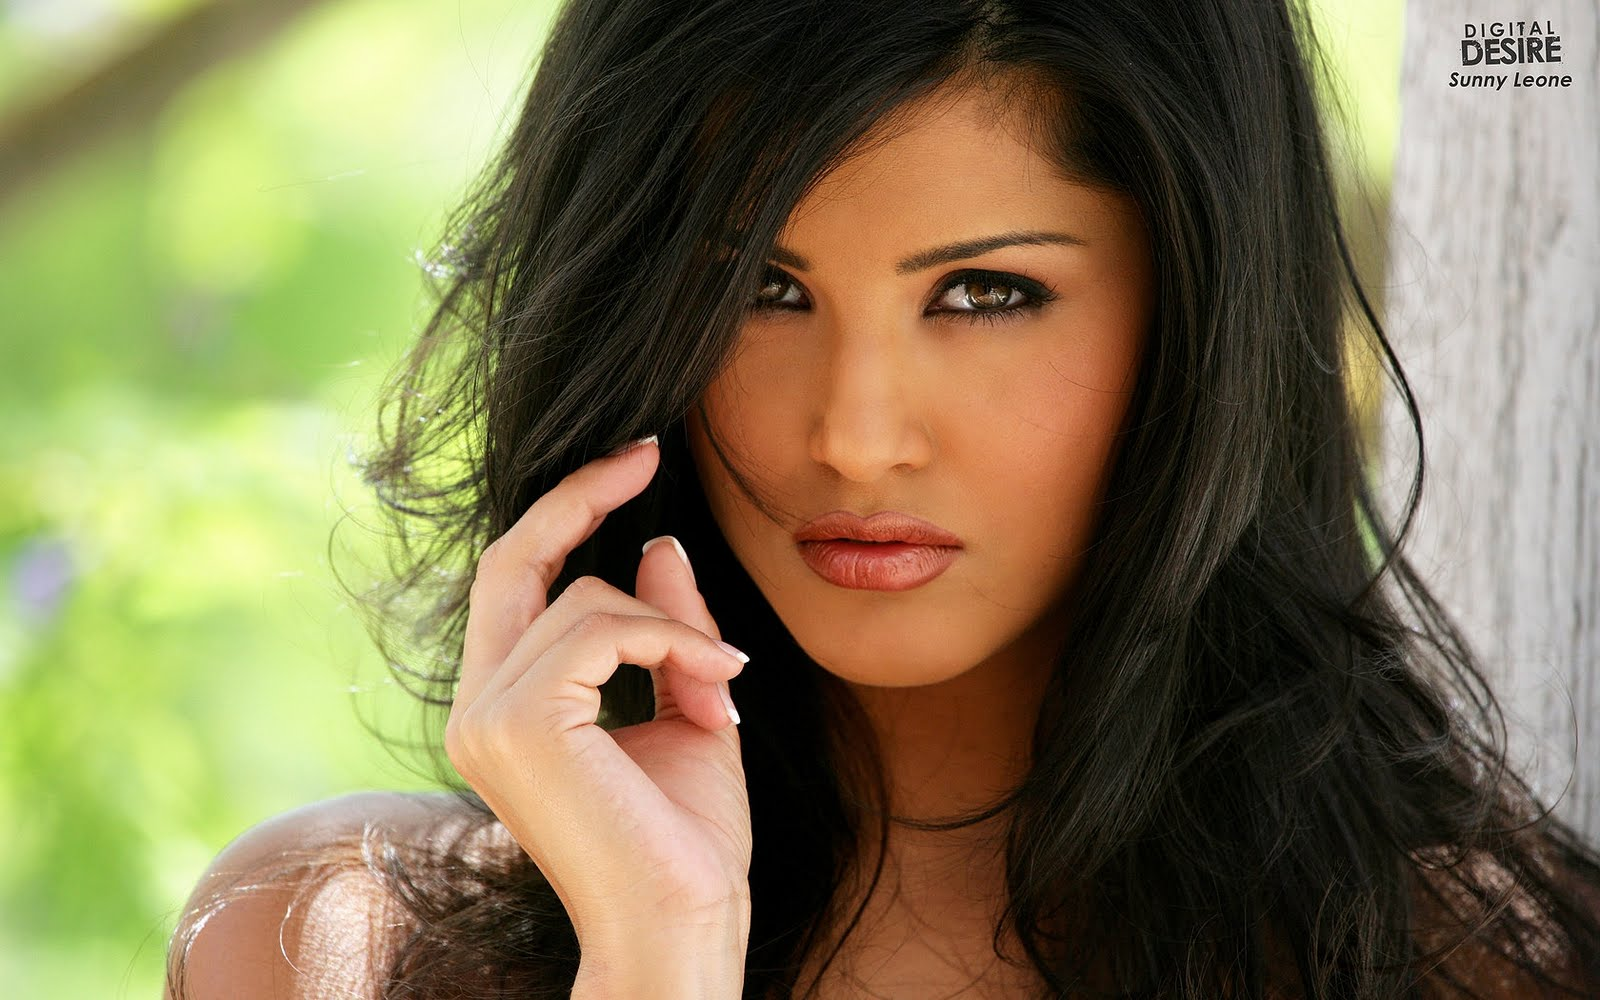 Sunny leones hd wallpapers hd wallpapers backgrounds photos pictures image pc - Sunny leone full hd wallpaper ...